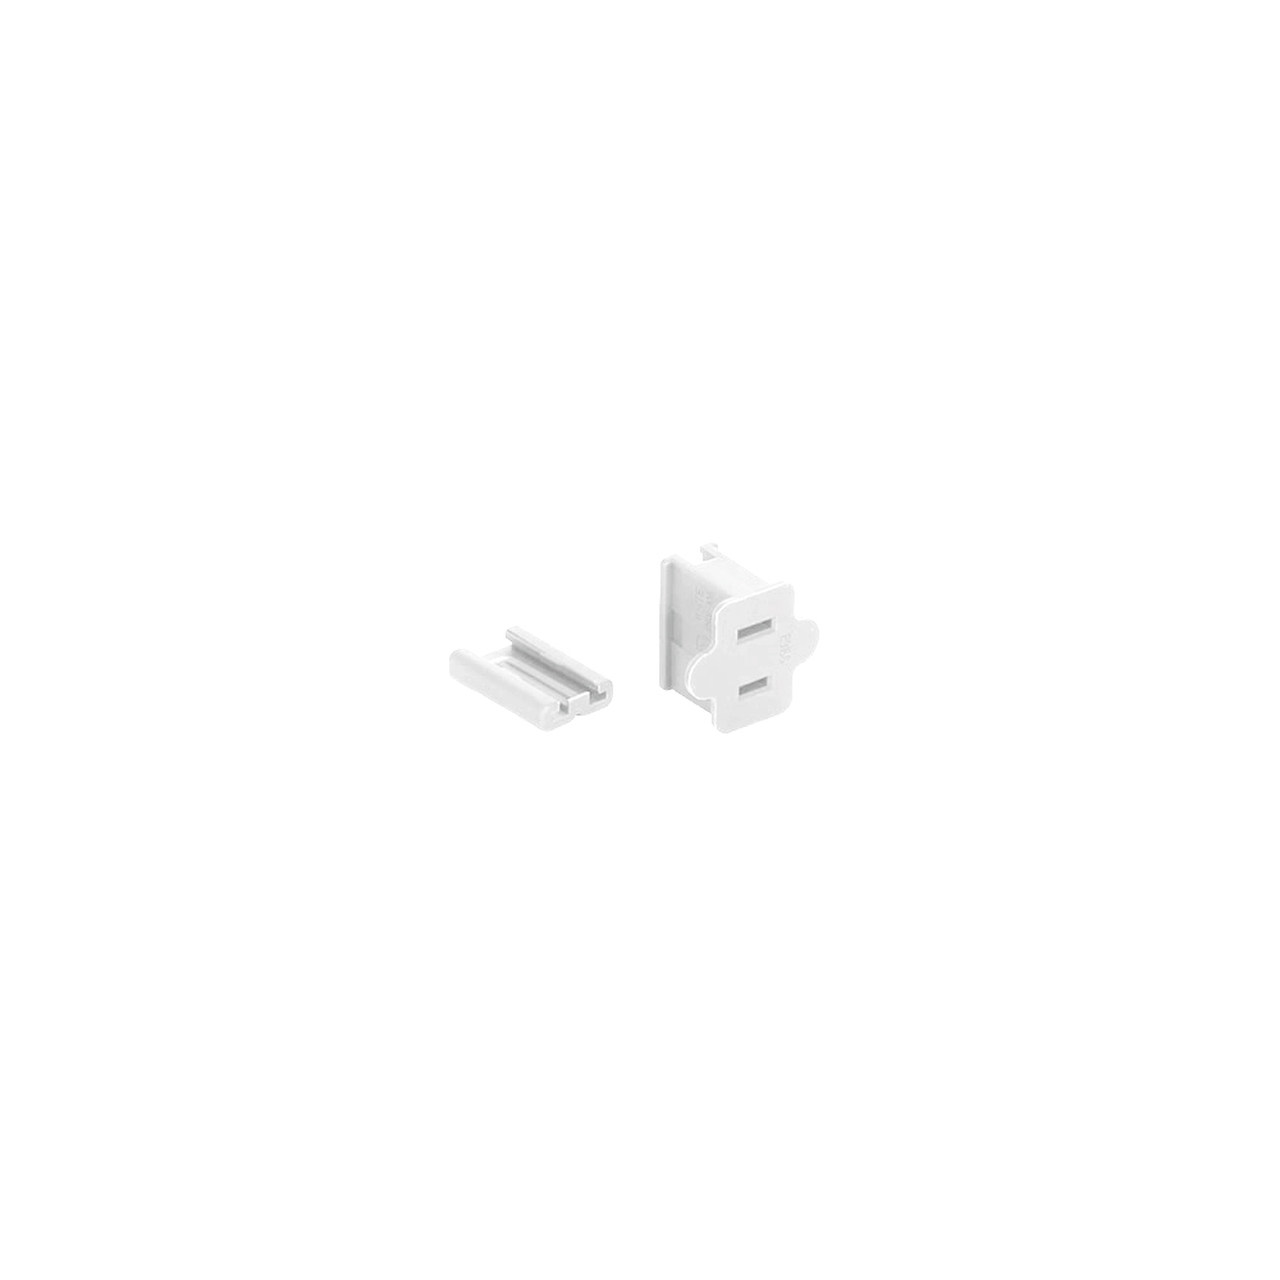 White Female Quick Zip Plug For SPT-1 18 Wire Gauge 8 Amps ...